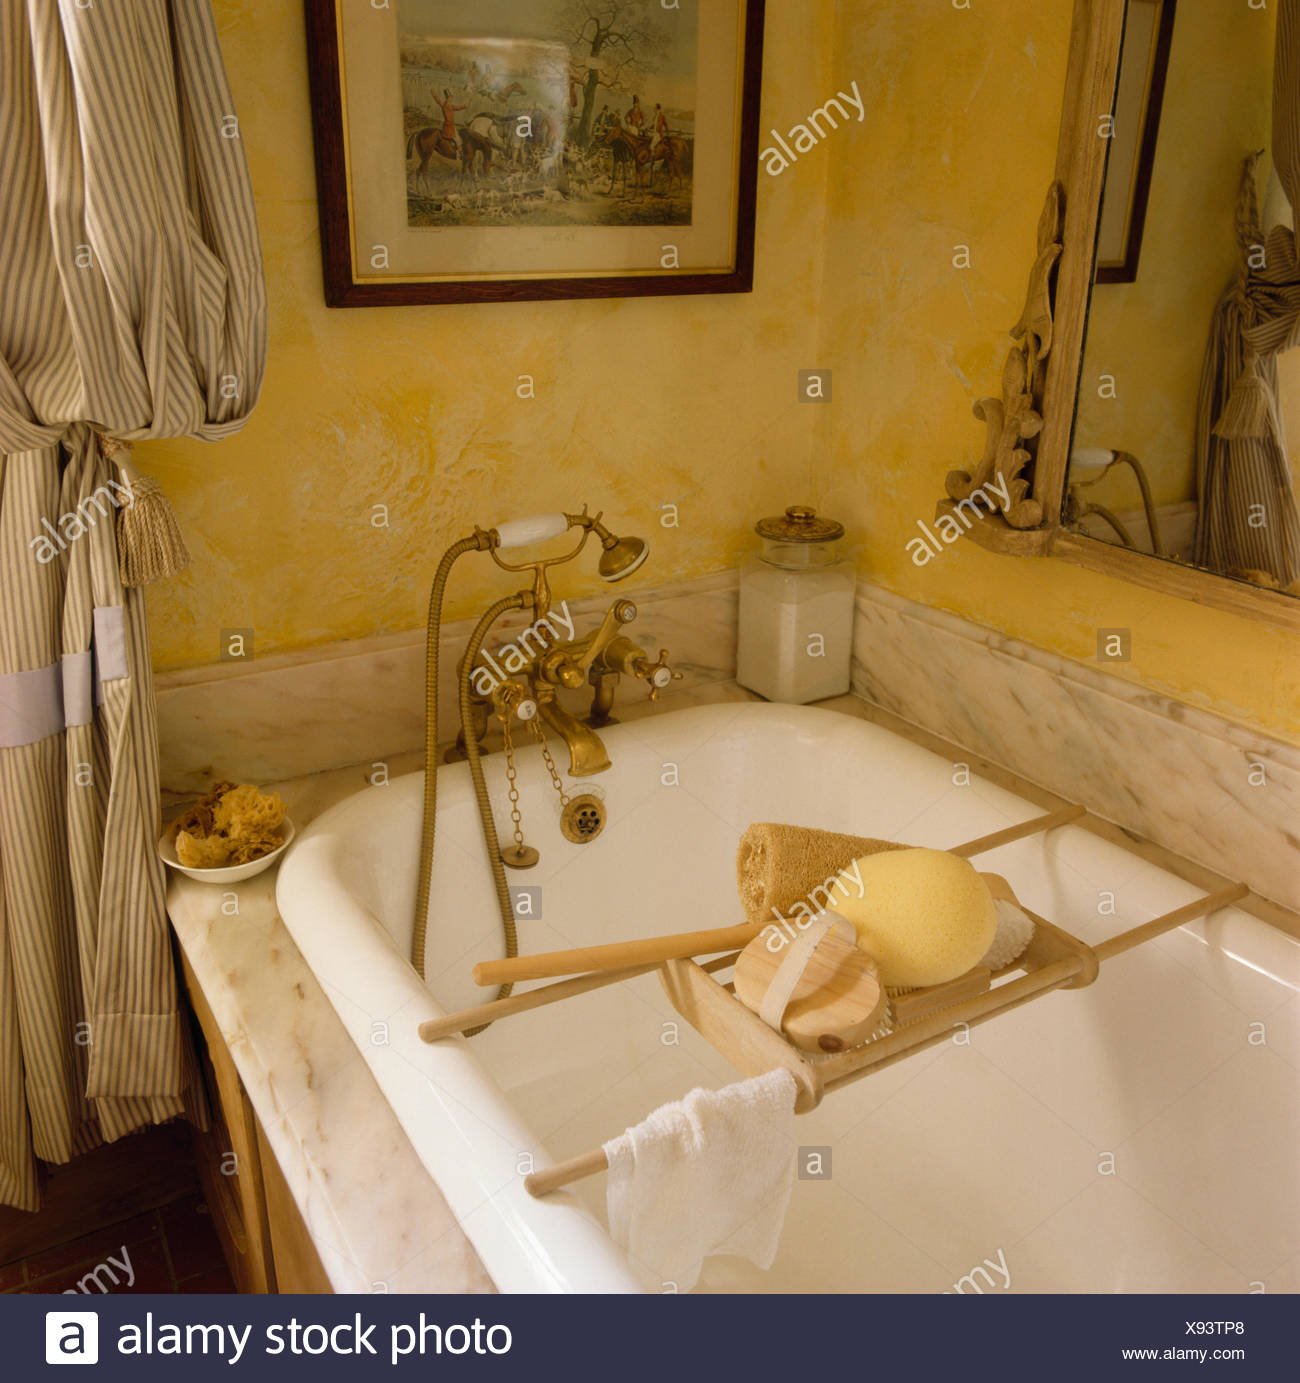 Wooden bath rack and brass shower taps on bath tub with marble ...